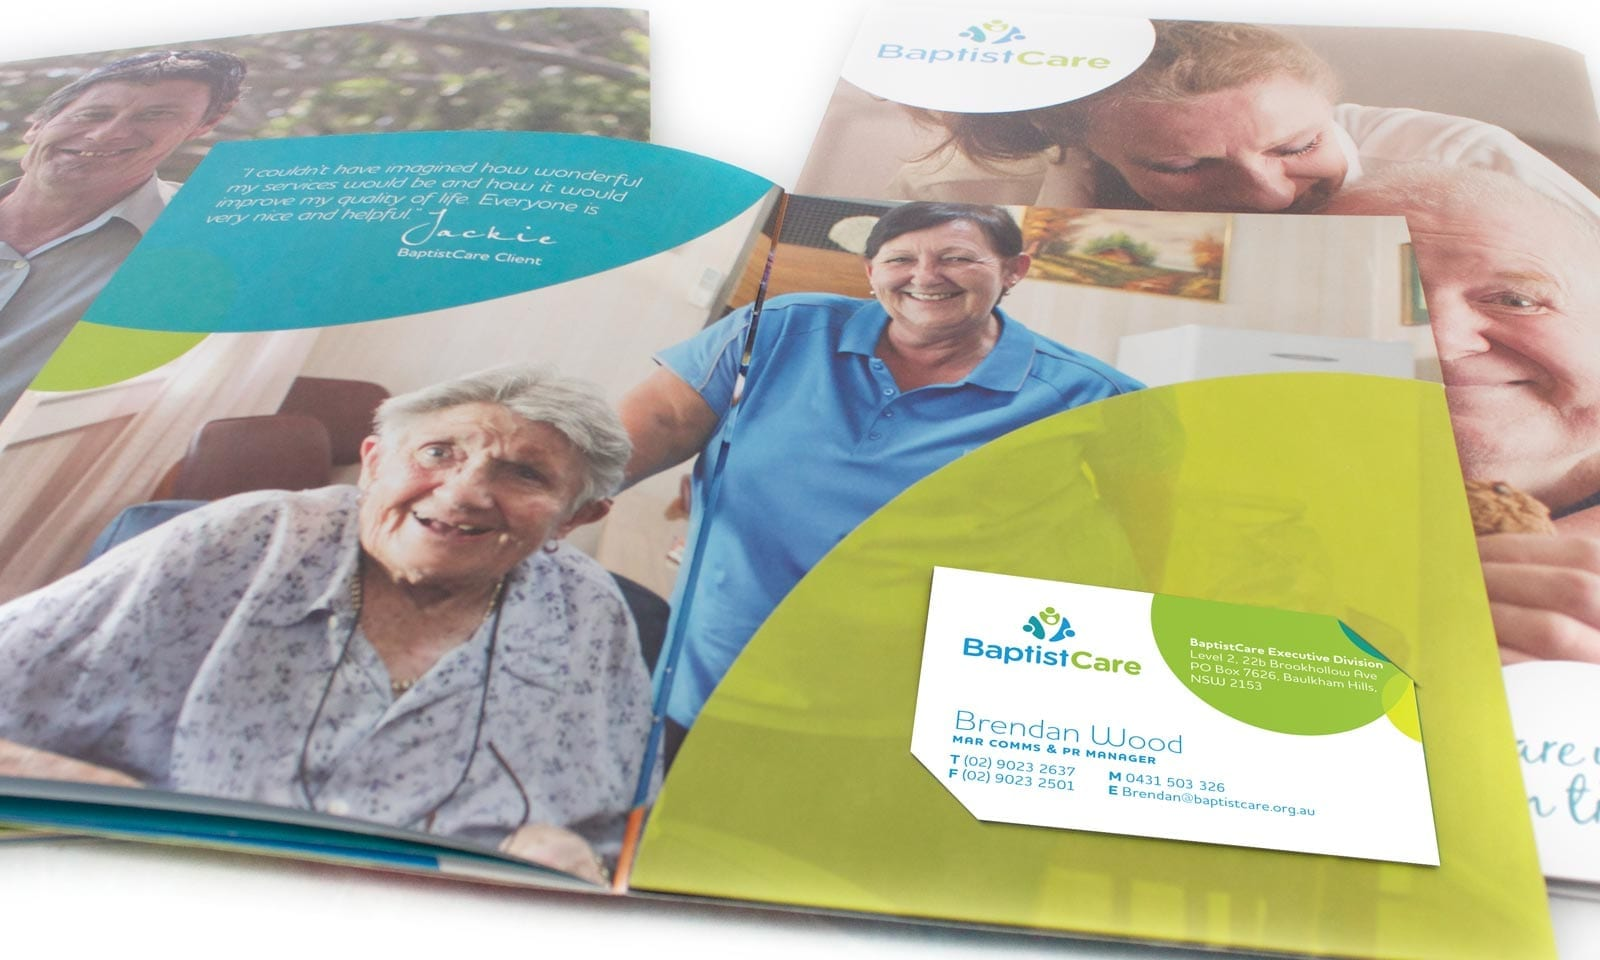 Literature design sydney, BaptistCare collateral and stationary branding.